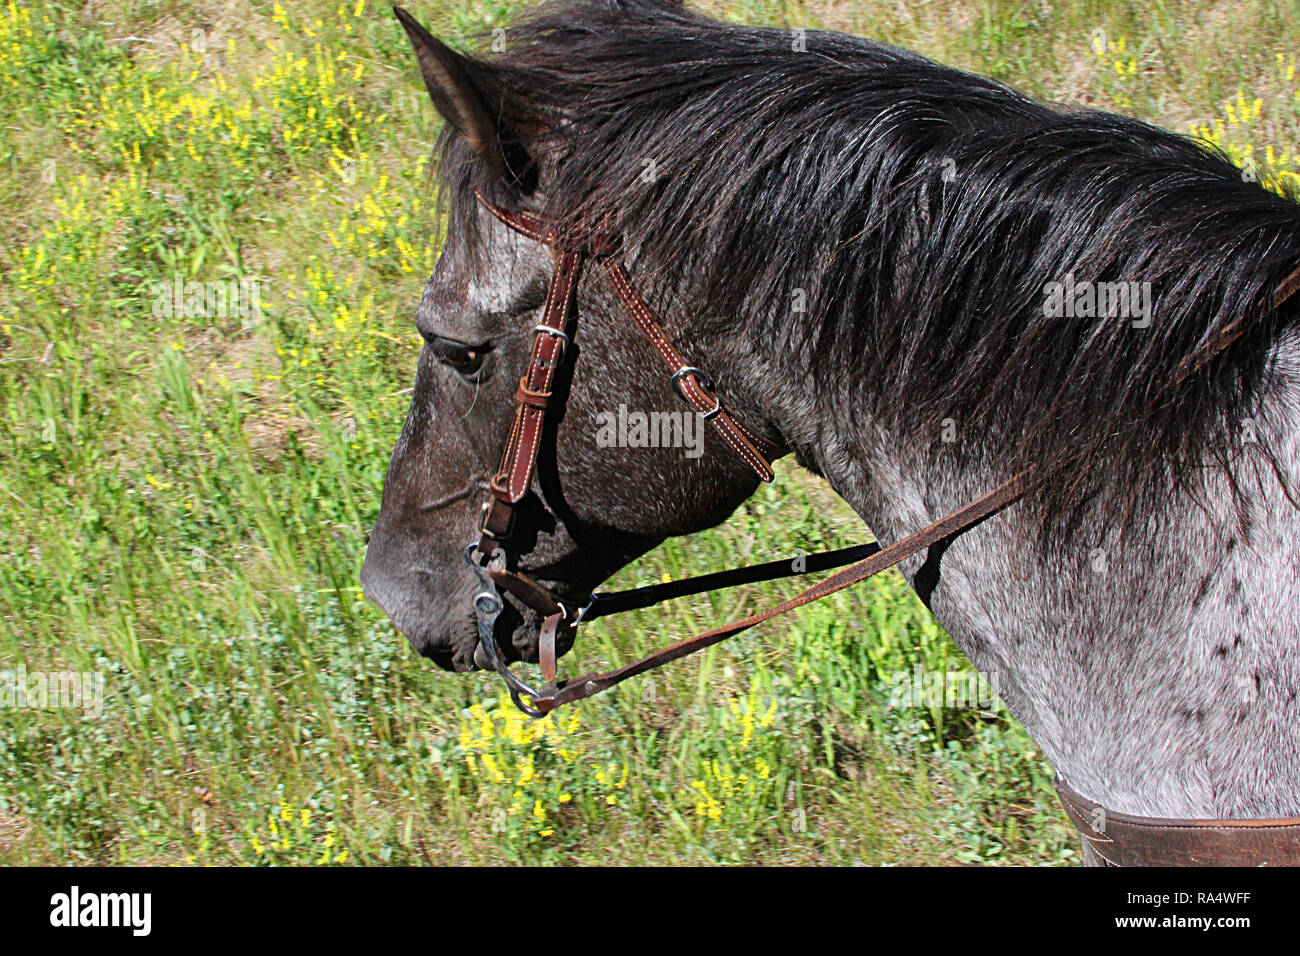 Horse's head with bridle. - Stock Image